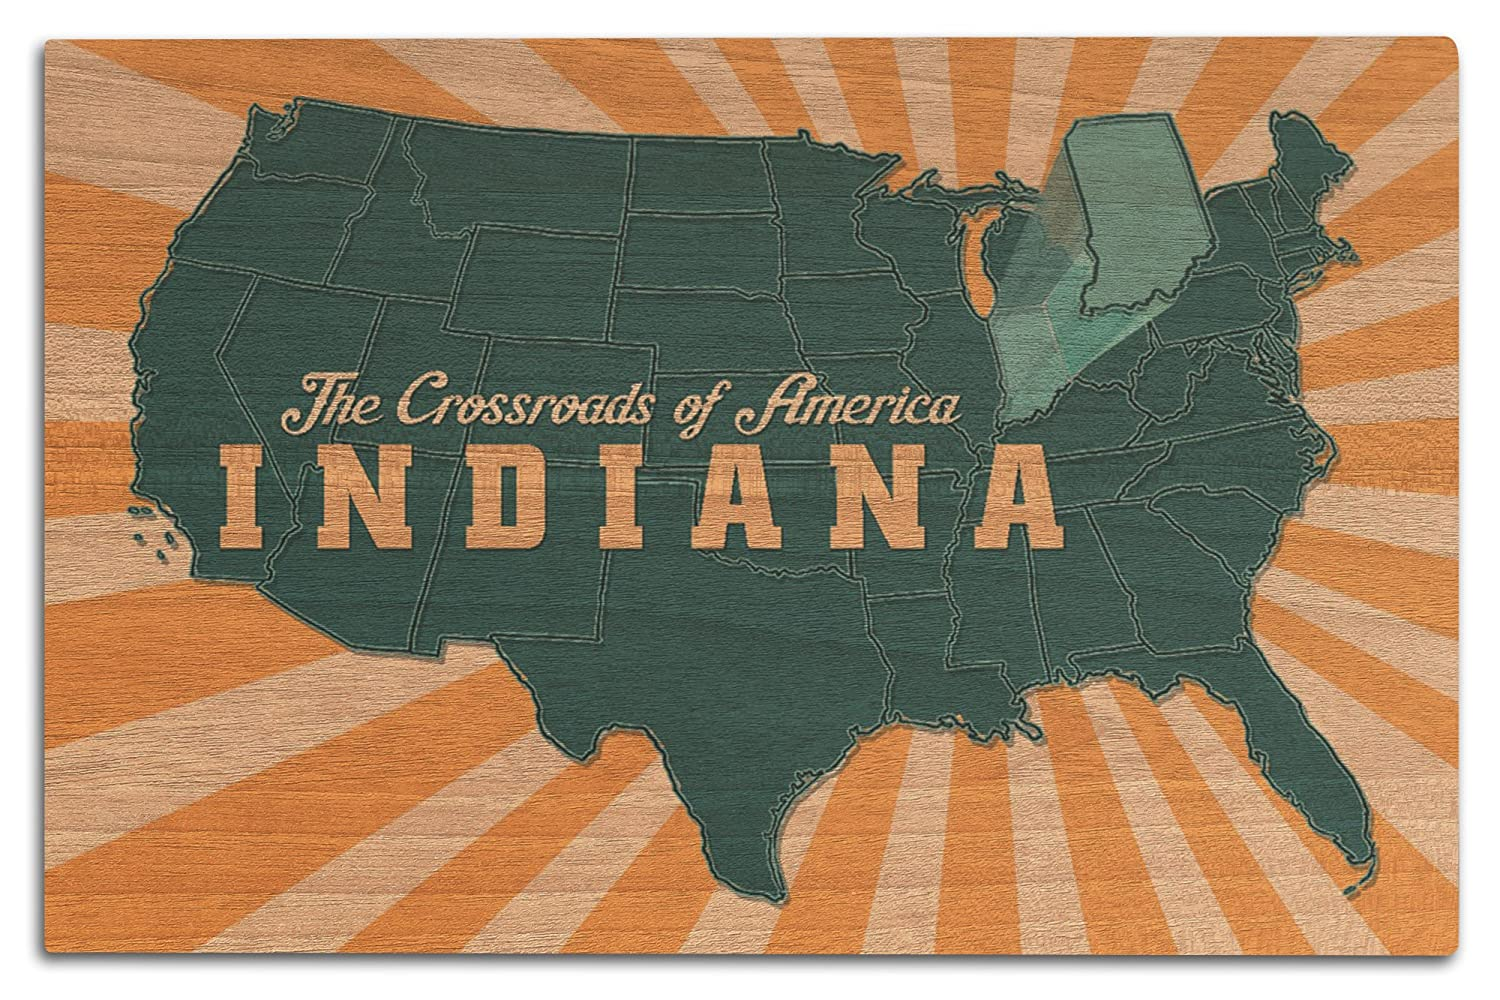 Amazon.com: Lantern Press Indiana - The Crossroads of ... on stereotypes of states in america, on a map of stereotypes america, stereotypical america,